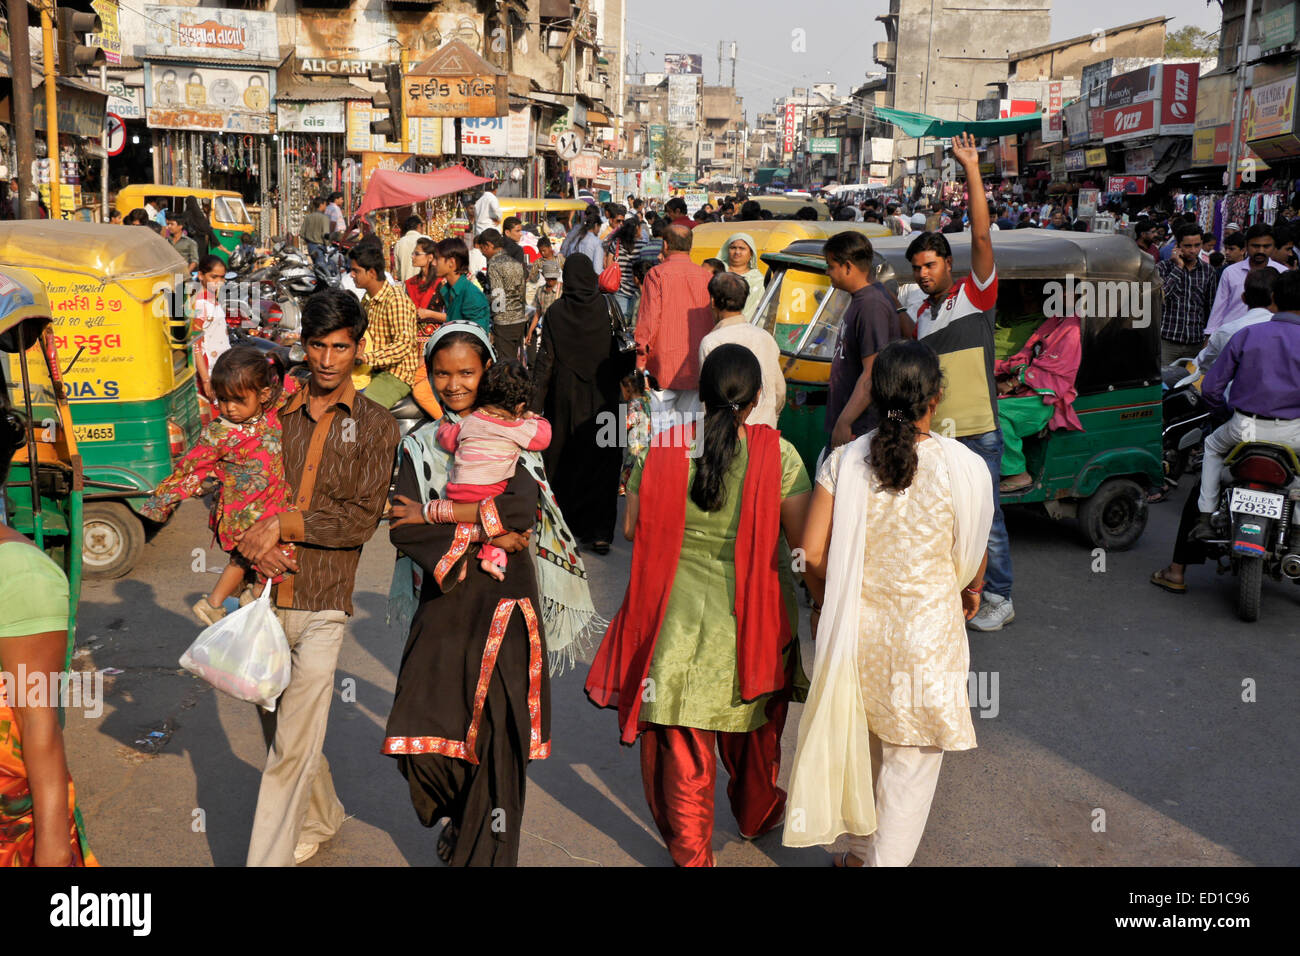 Crowded street in Old Ahmedabad, Gujarat, India - Stock Image